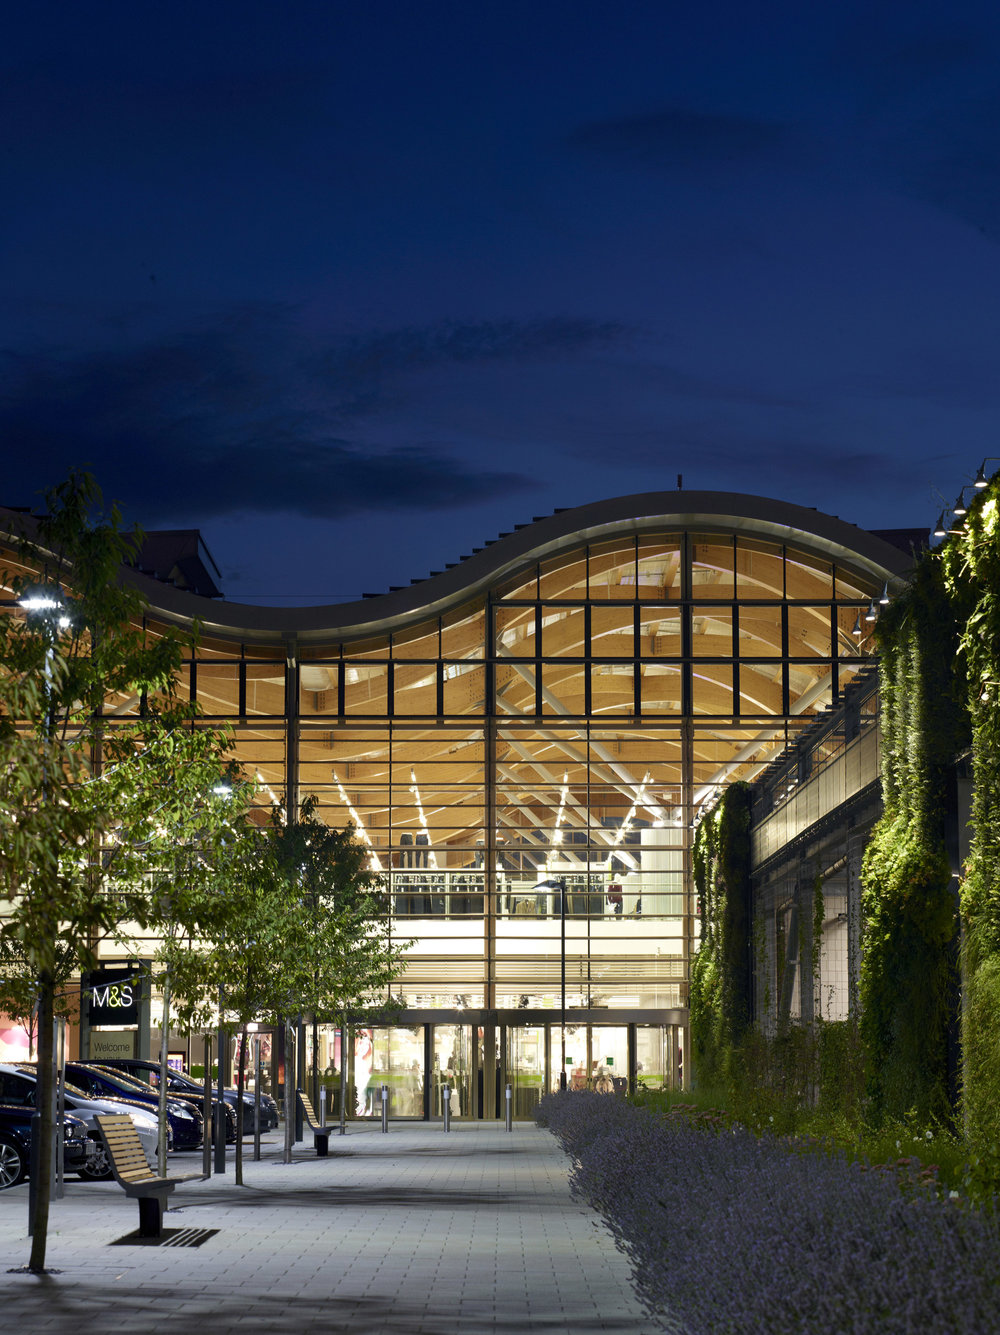 Cheshire Oaks External - Image - M&S.jpg